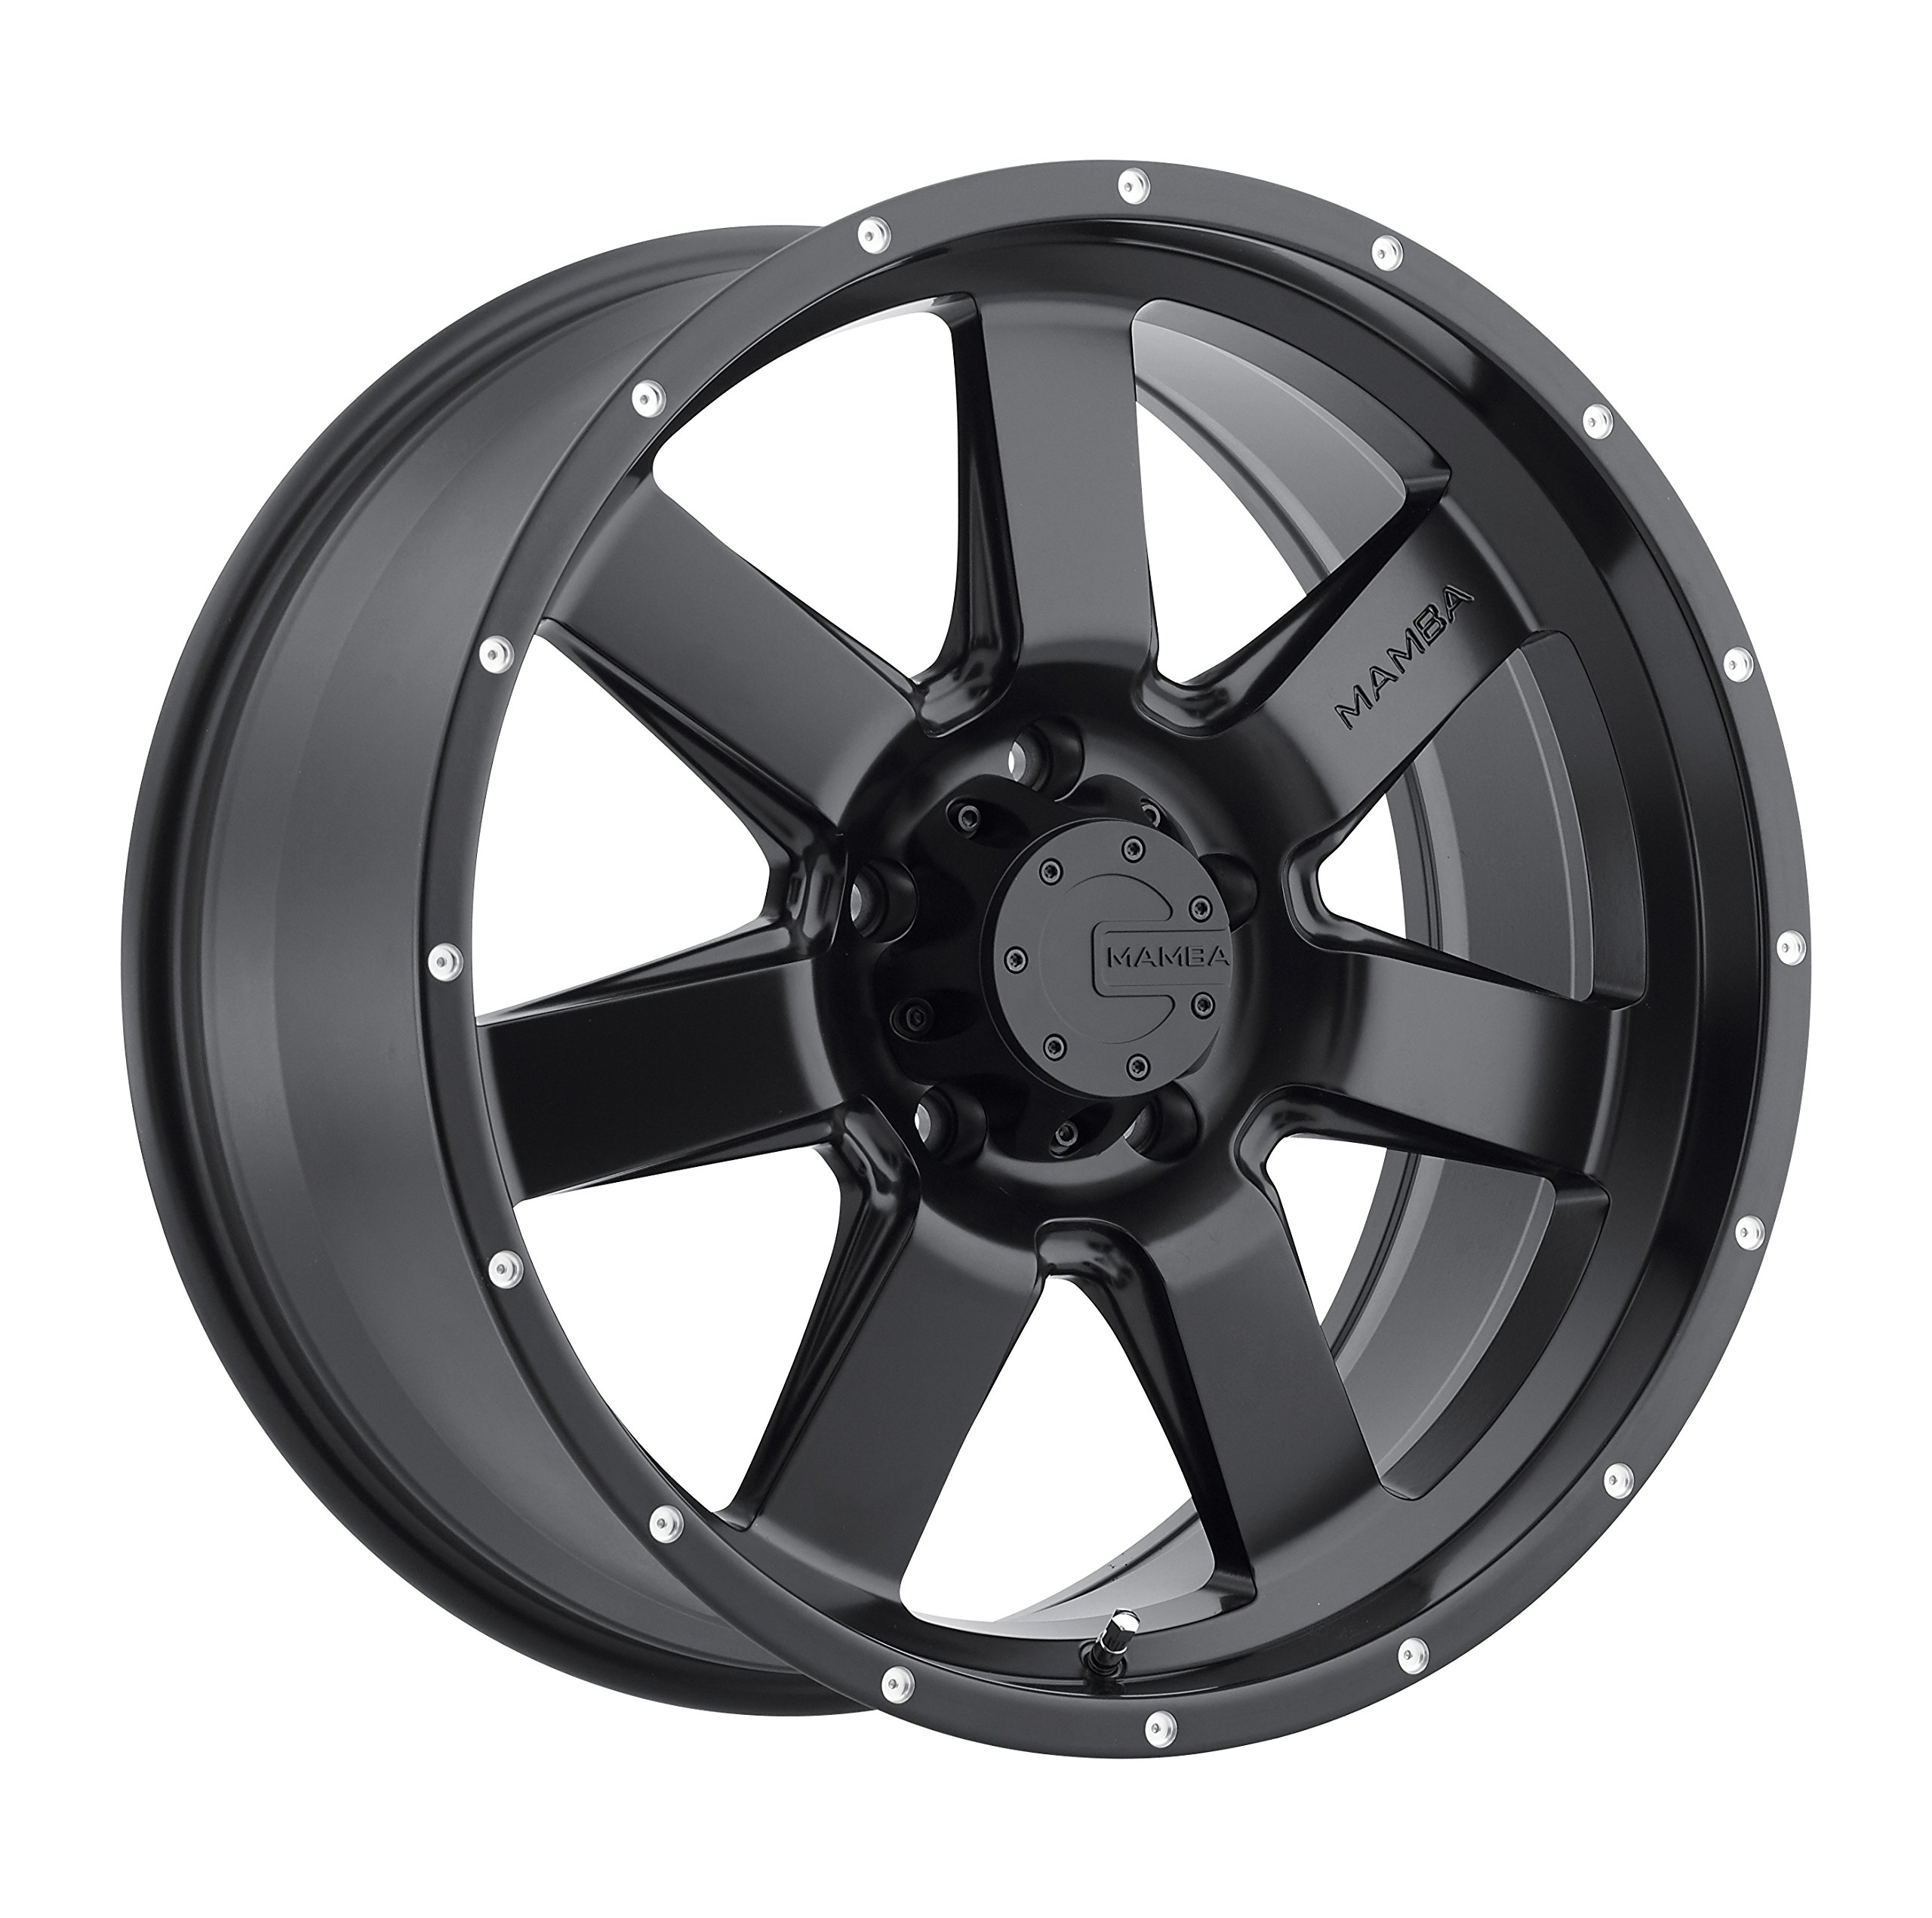 Mamba-M14-Matte-Black-Wheel-17x95x127mm-12mm-offset